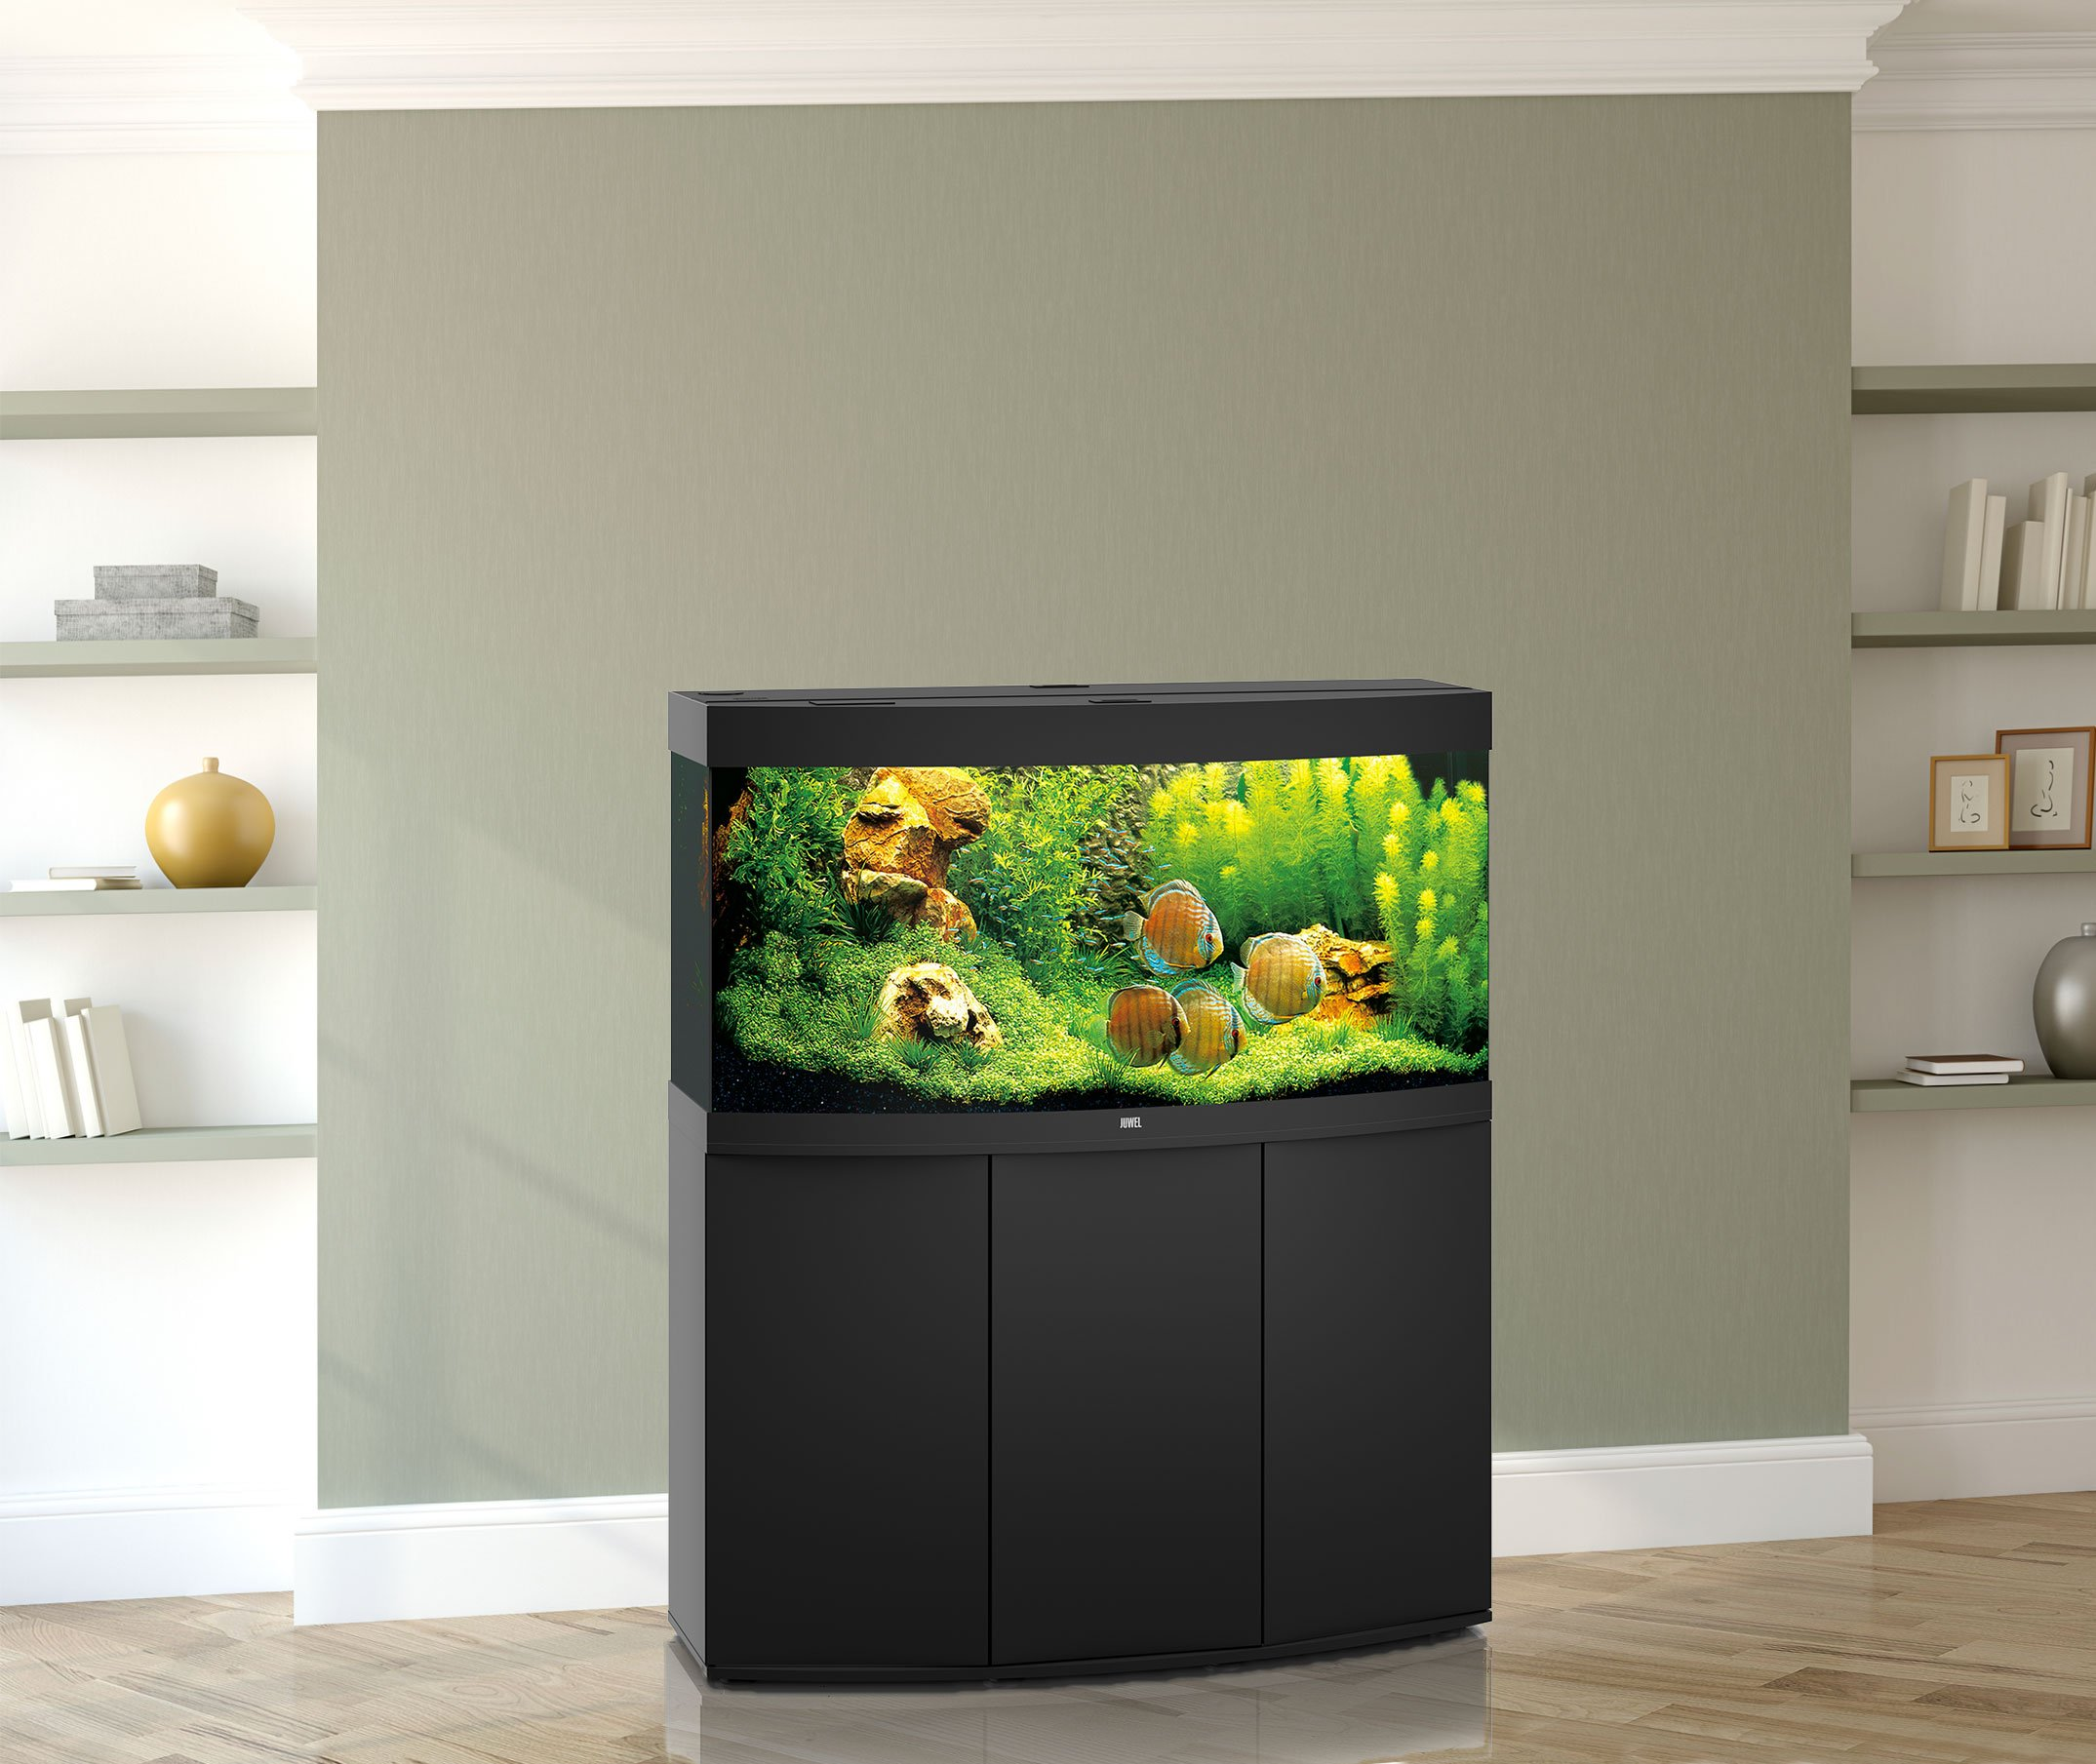 juwel aquarium vision 260 led mit unterschrank sbx bei. Black Bedroom Furniture Sets. Home Design Ideas